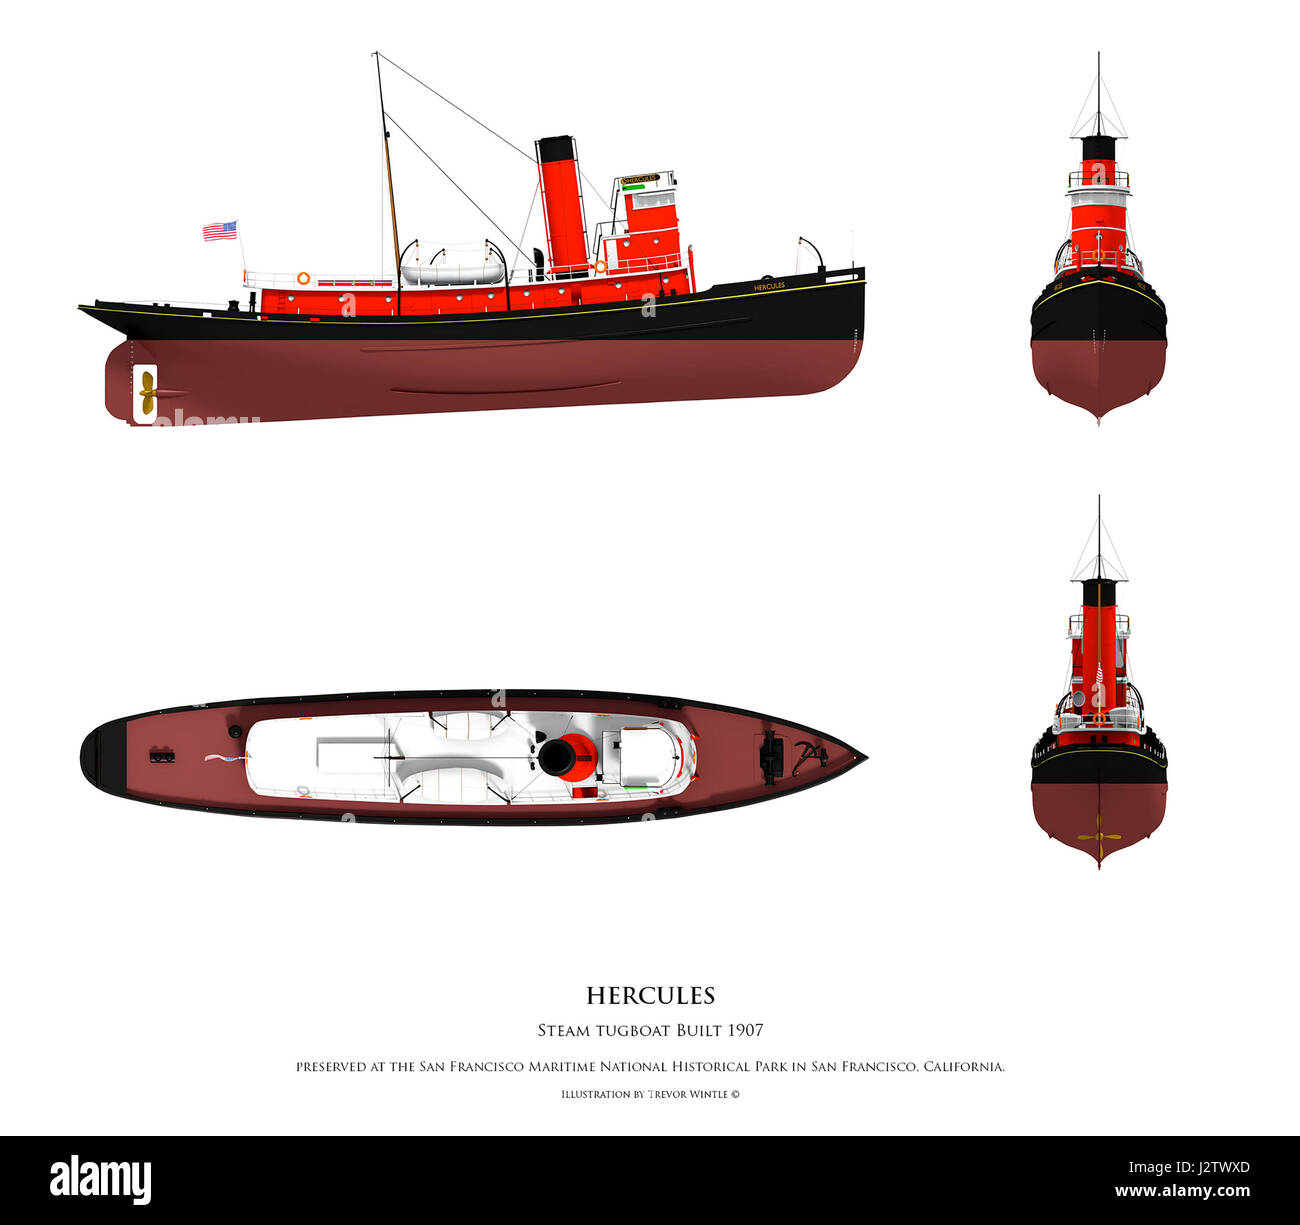 Tug Boat Cut Out Stock Images Pictures Alamy Tugboat Wiring Diagram Illustration Of Hercules Steam Image